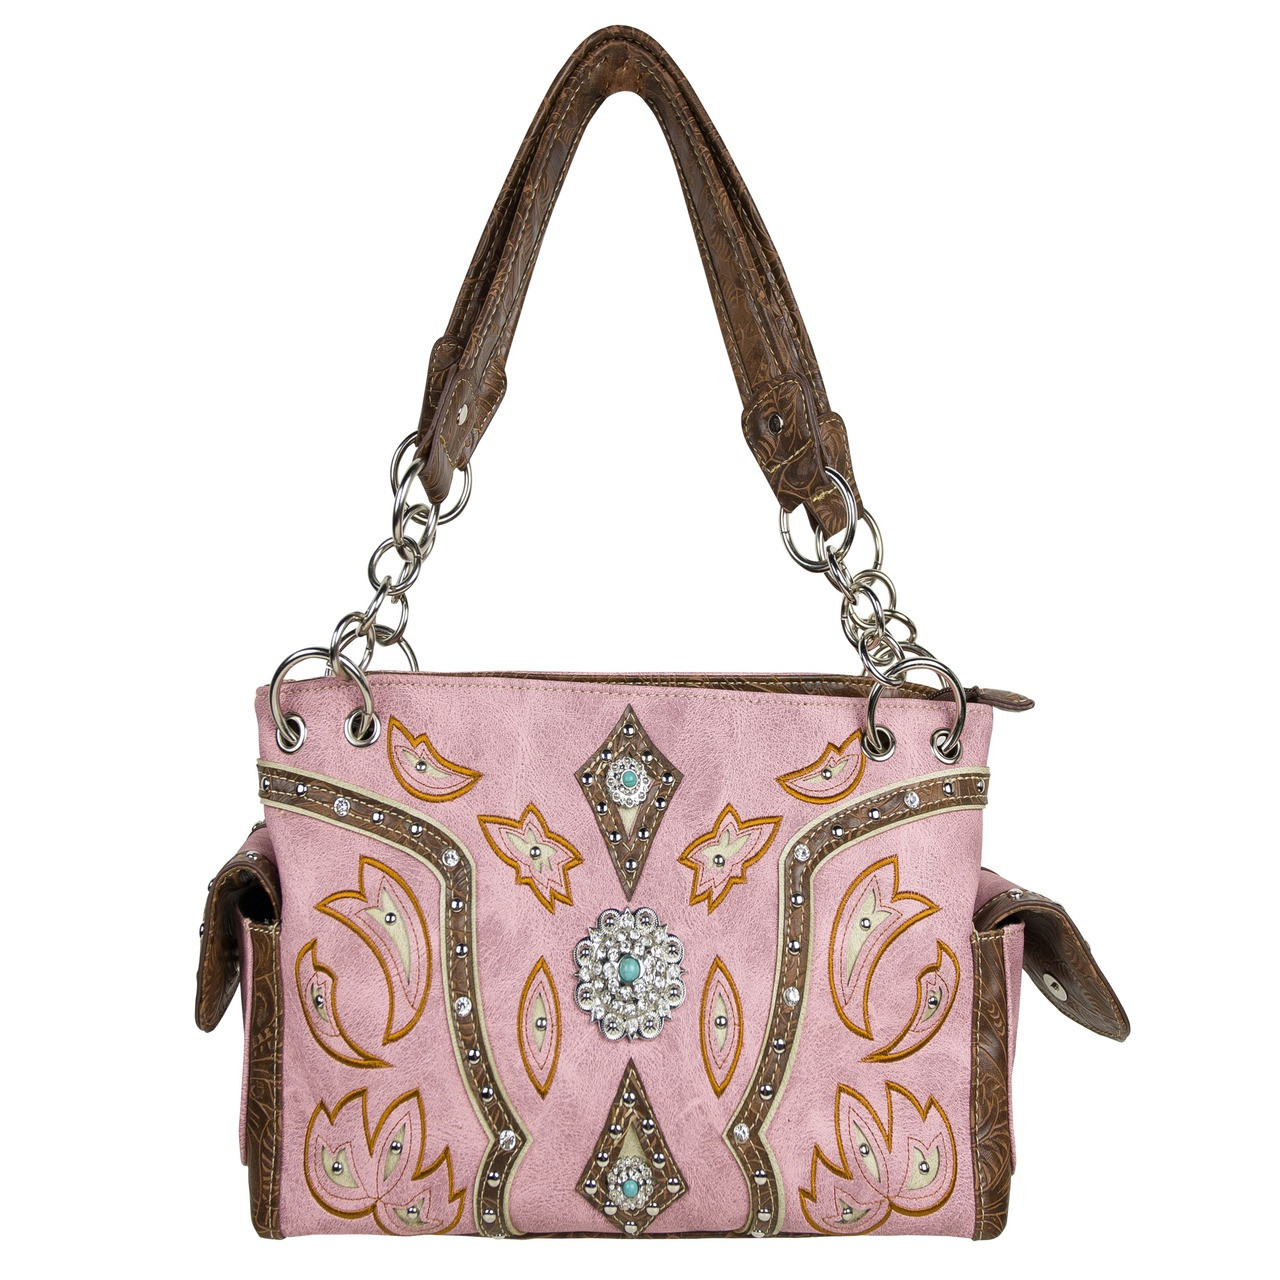 PINK WESTERN BLUE STONE LOOK SHOULDER HANDBAG HB1-39W17PNK